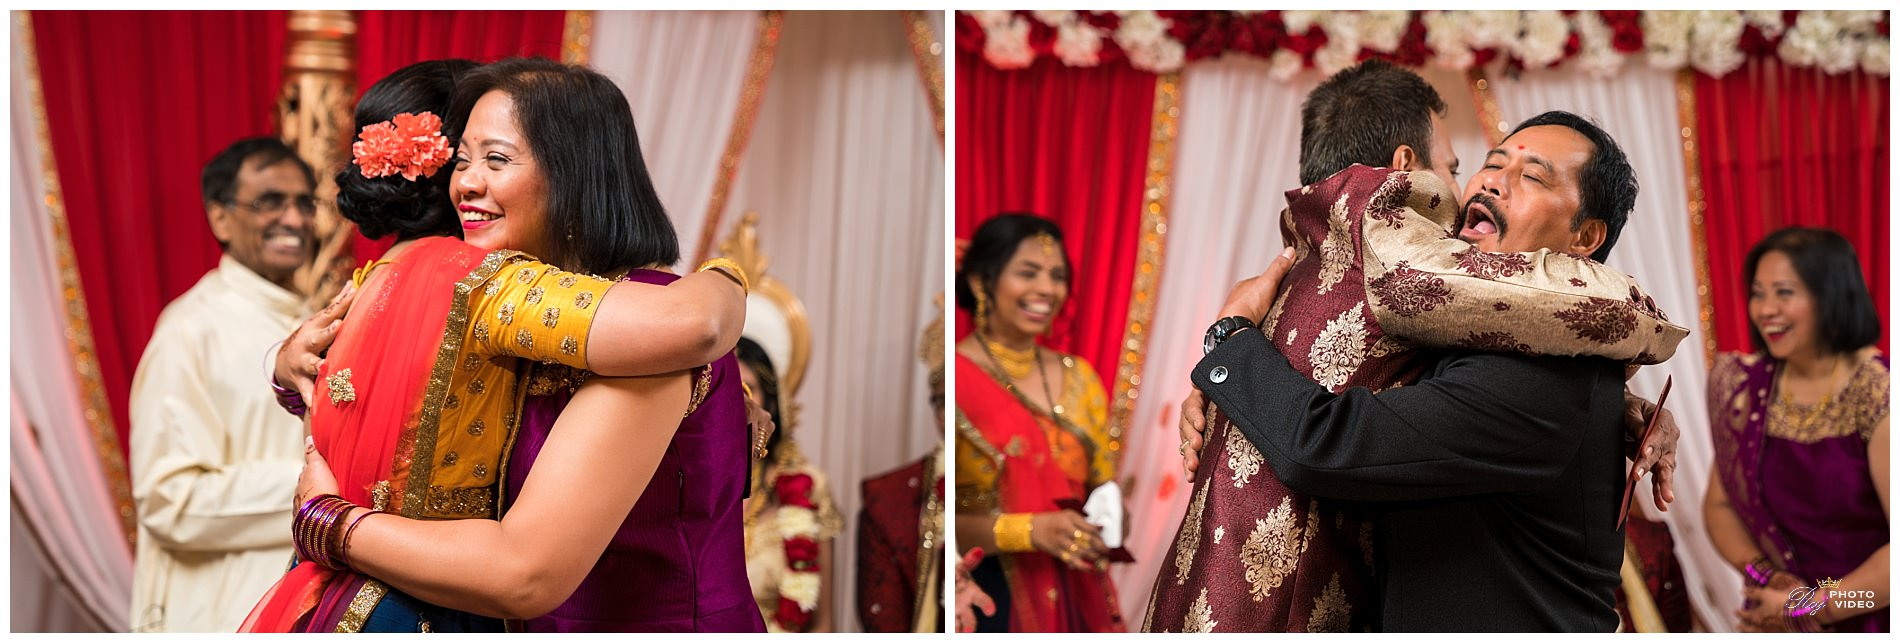 Aashirwad-Palace-Randolph-NJ-Hindu-Wedding-Ceremony-Khusbu-Jeff-24.jpg